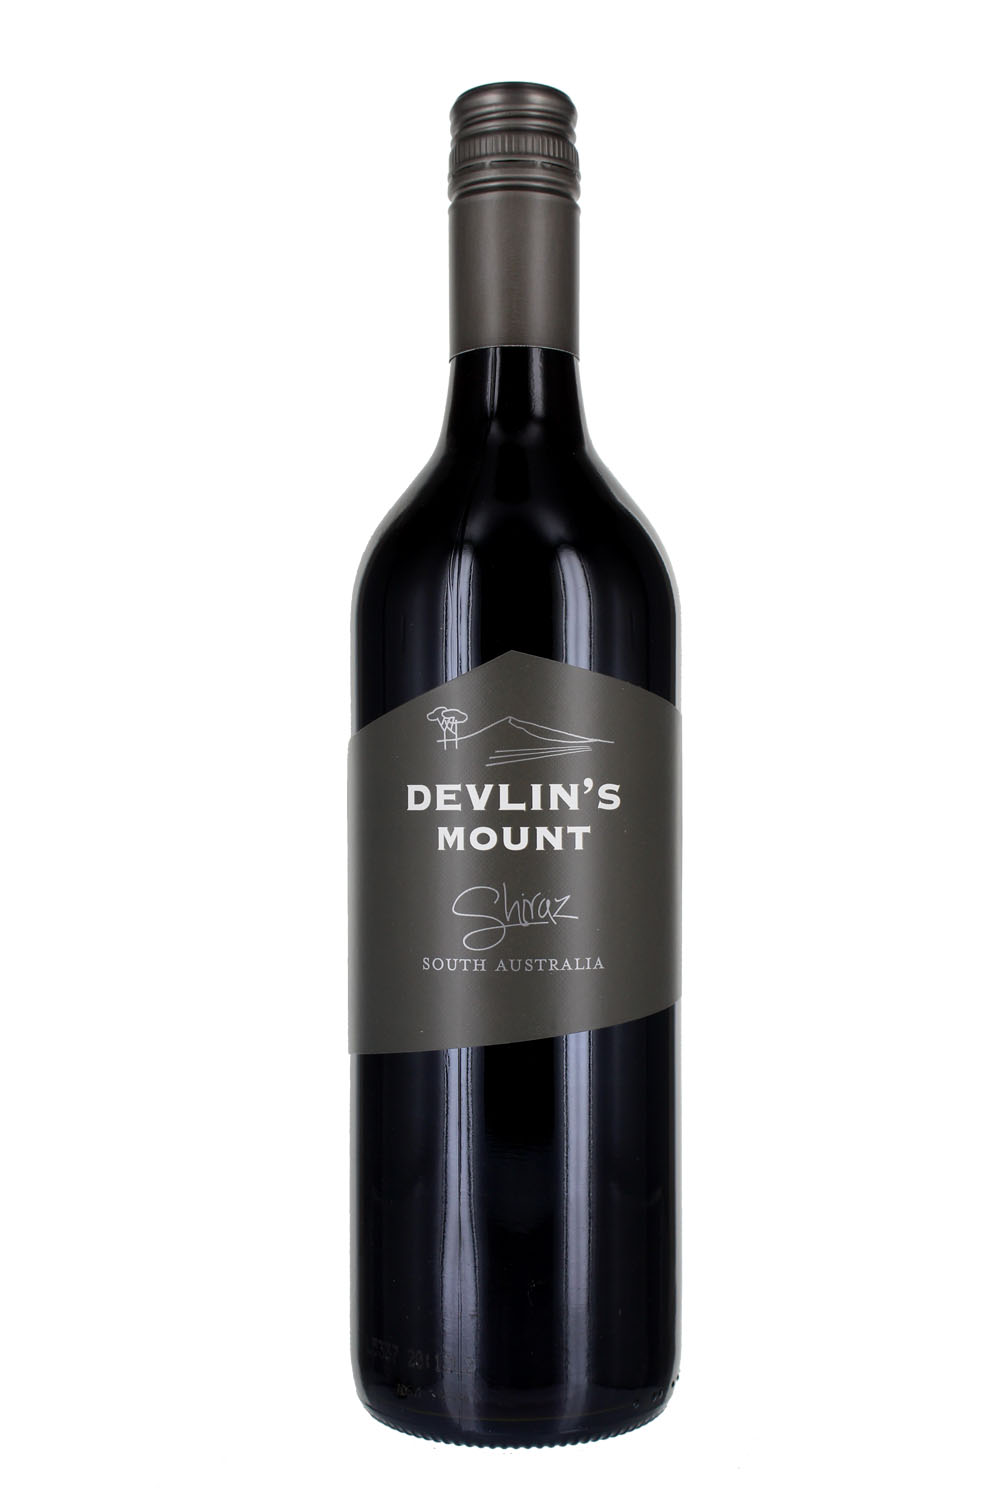 Devlin's Mount Shiraz, South Australia, Australia 2017